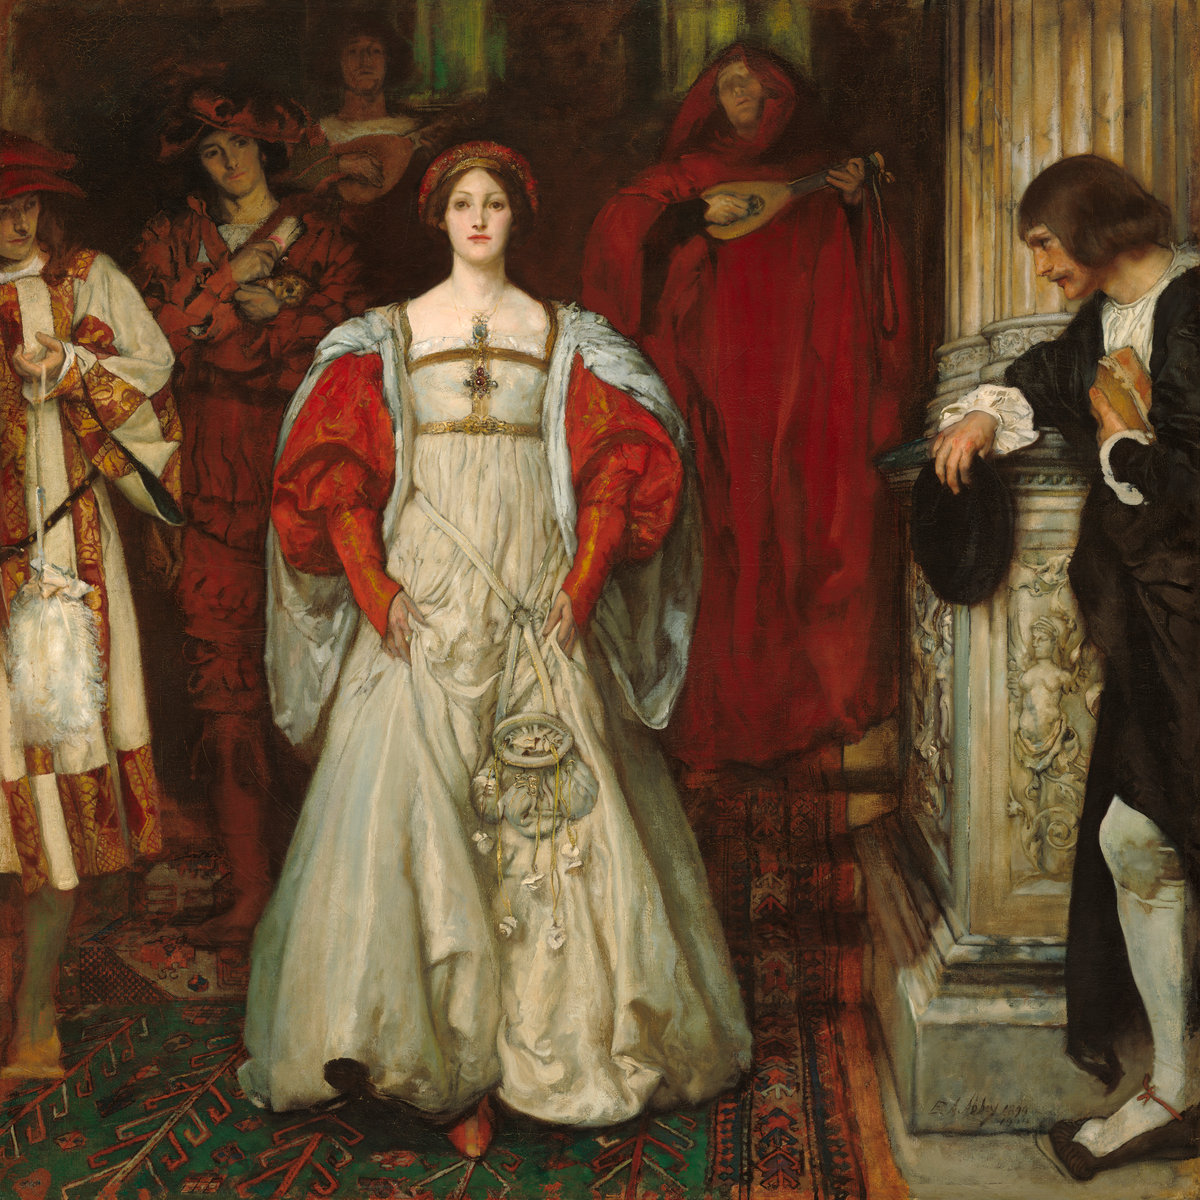 Who is Sylvia? by Edwin Austin Abbey, 1896 - 1900